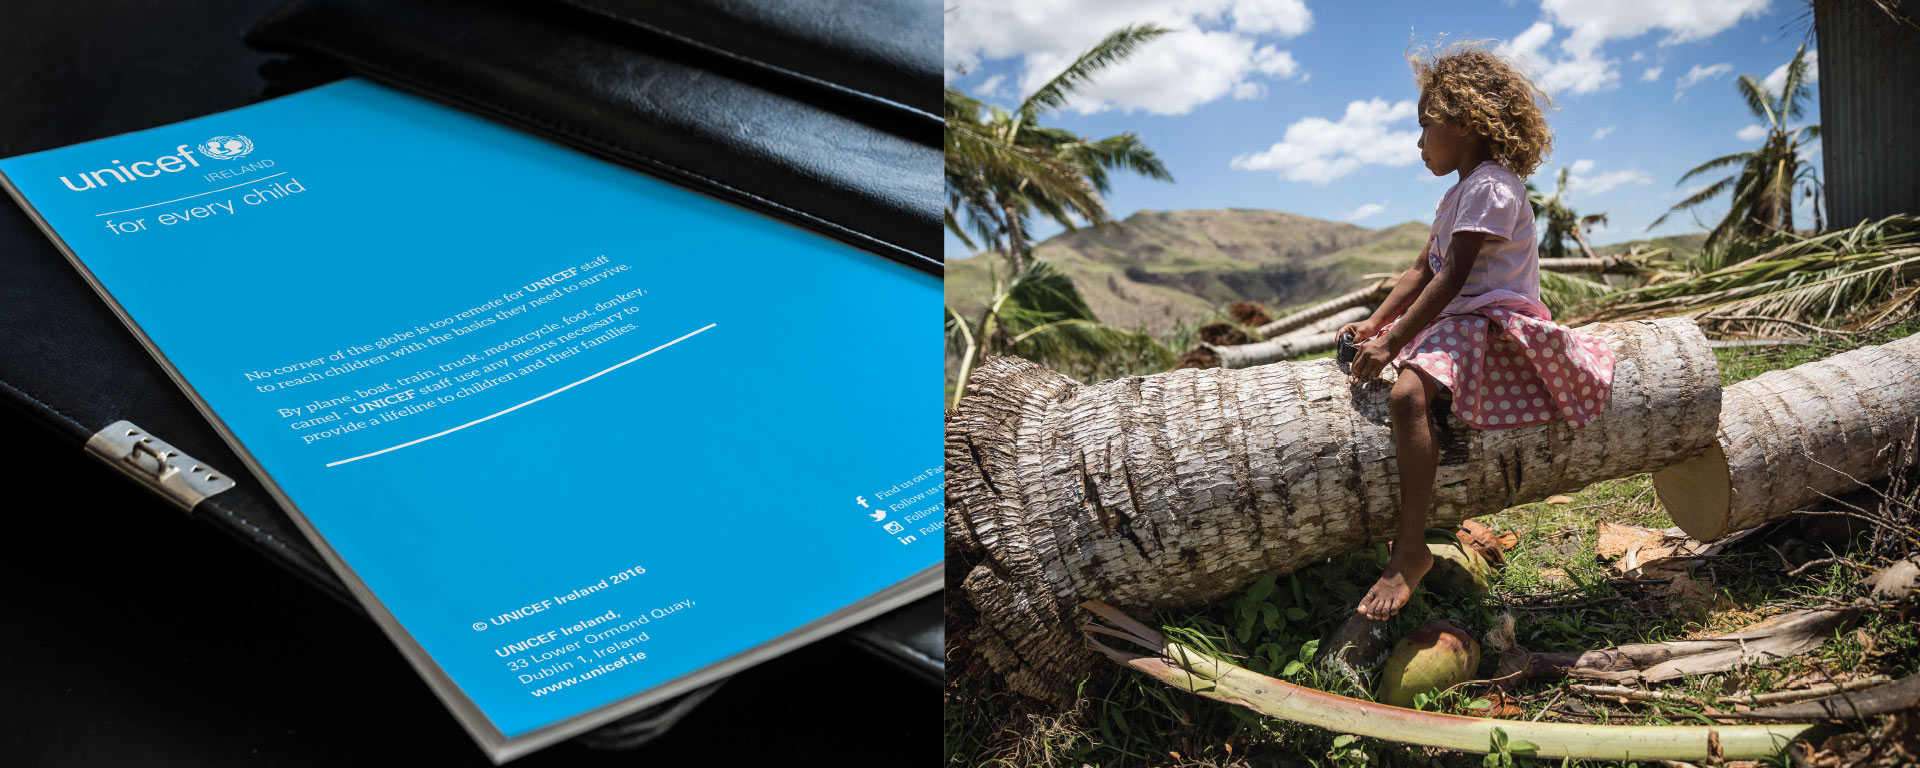 Unicef back cover and image